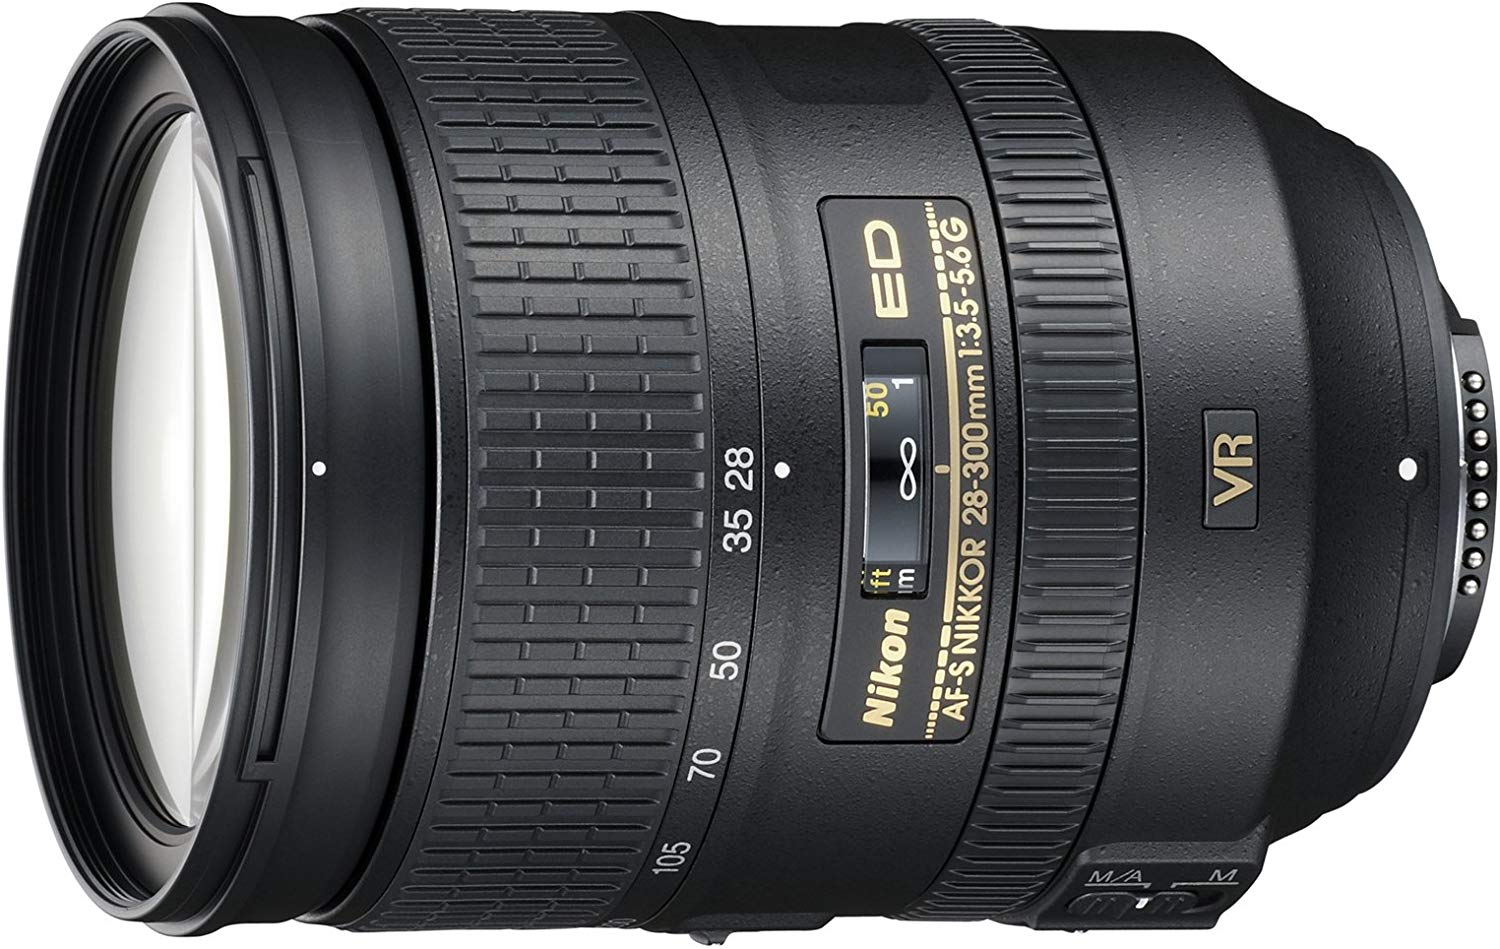 Travel Photography Gear: Nikkor AF-S 28-300 mm F/3.5-5.6G ED VR